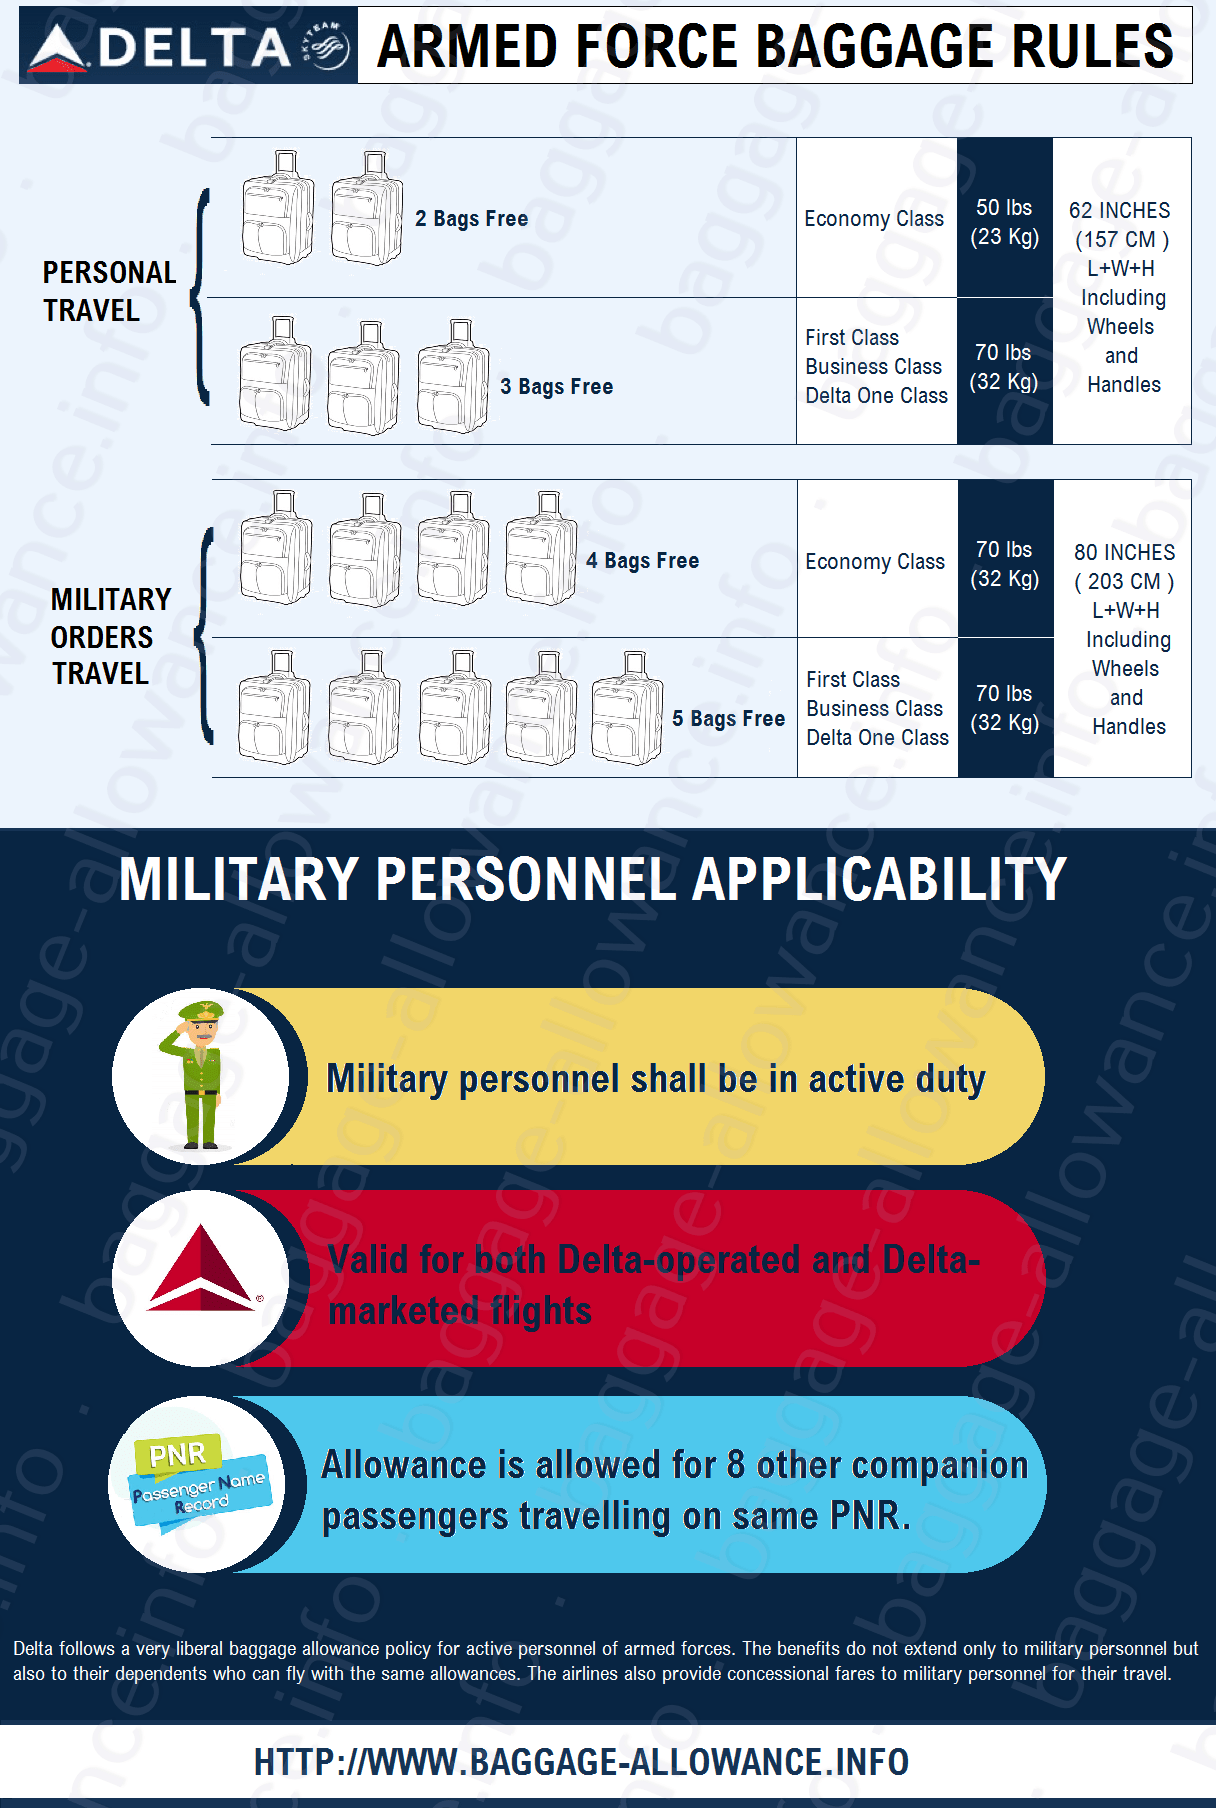 Delta Airlines Policy of Baggage Allowance For Armed Forces